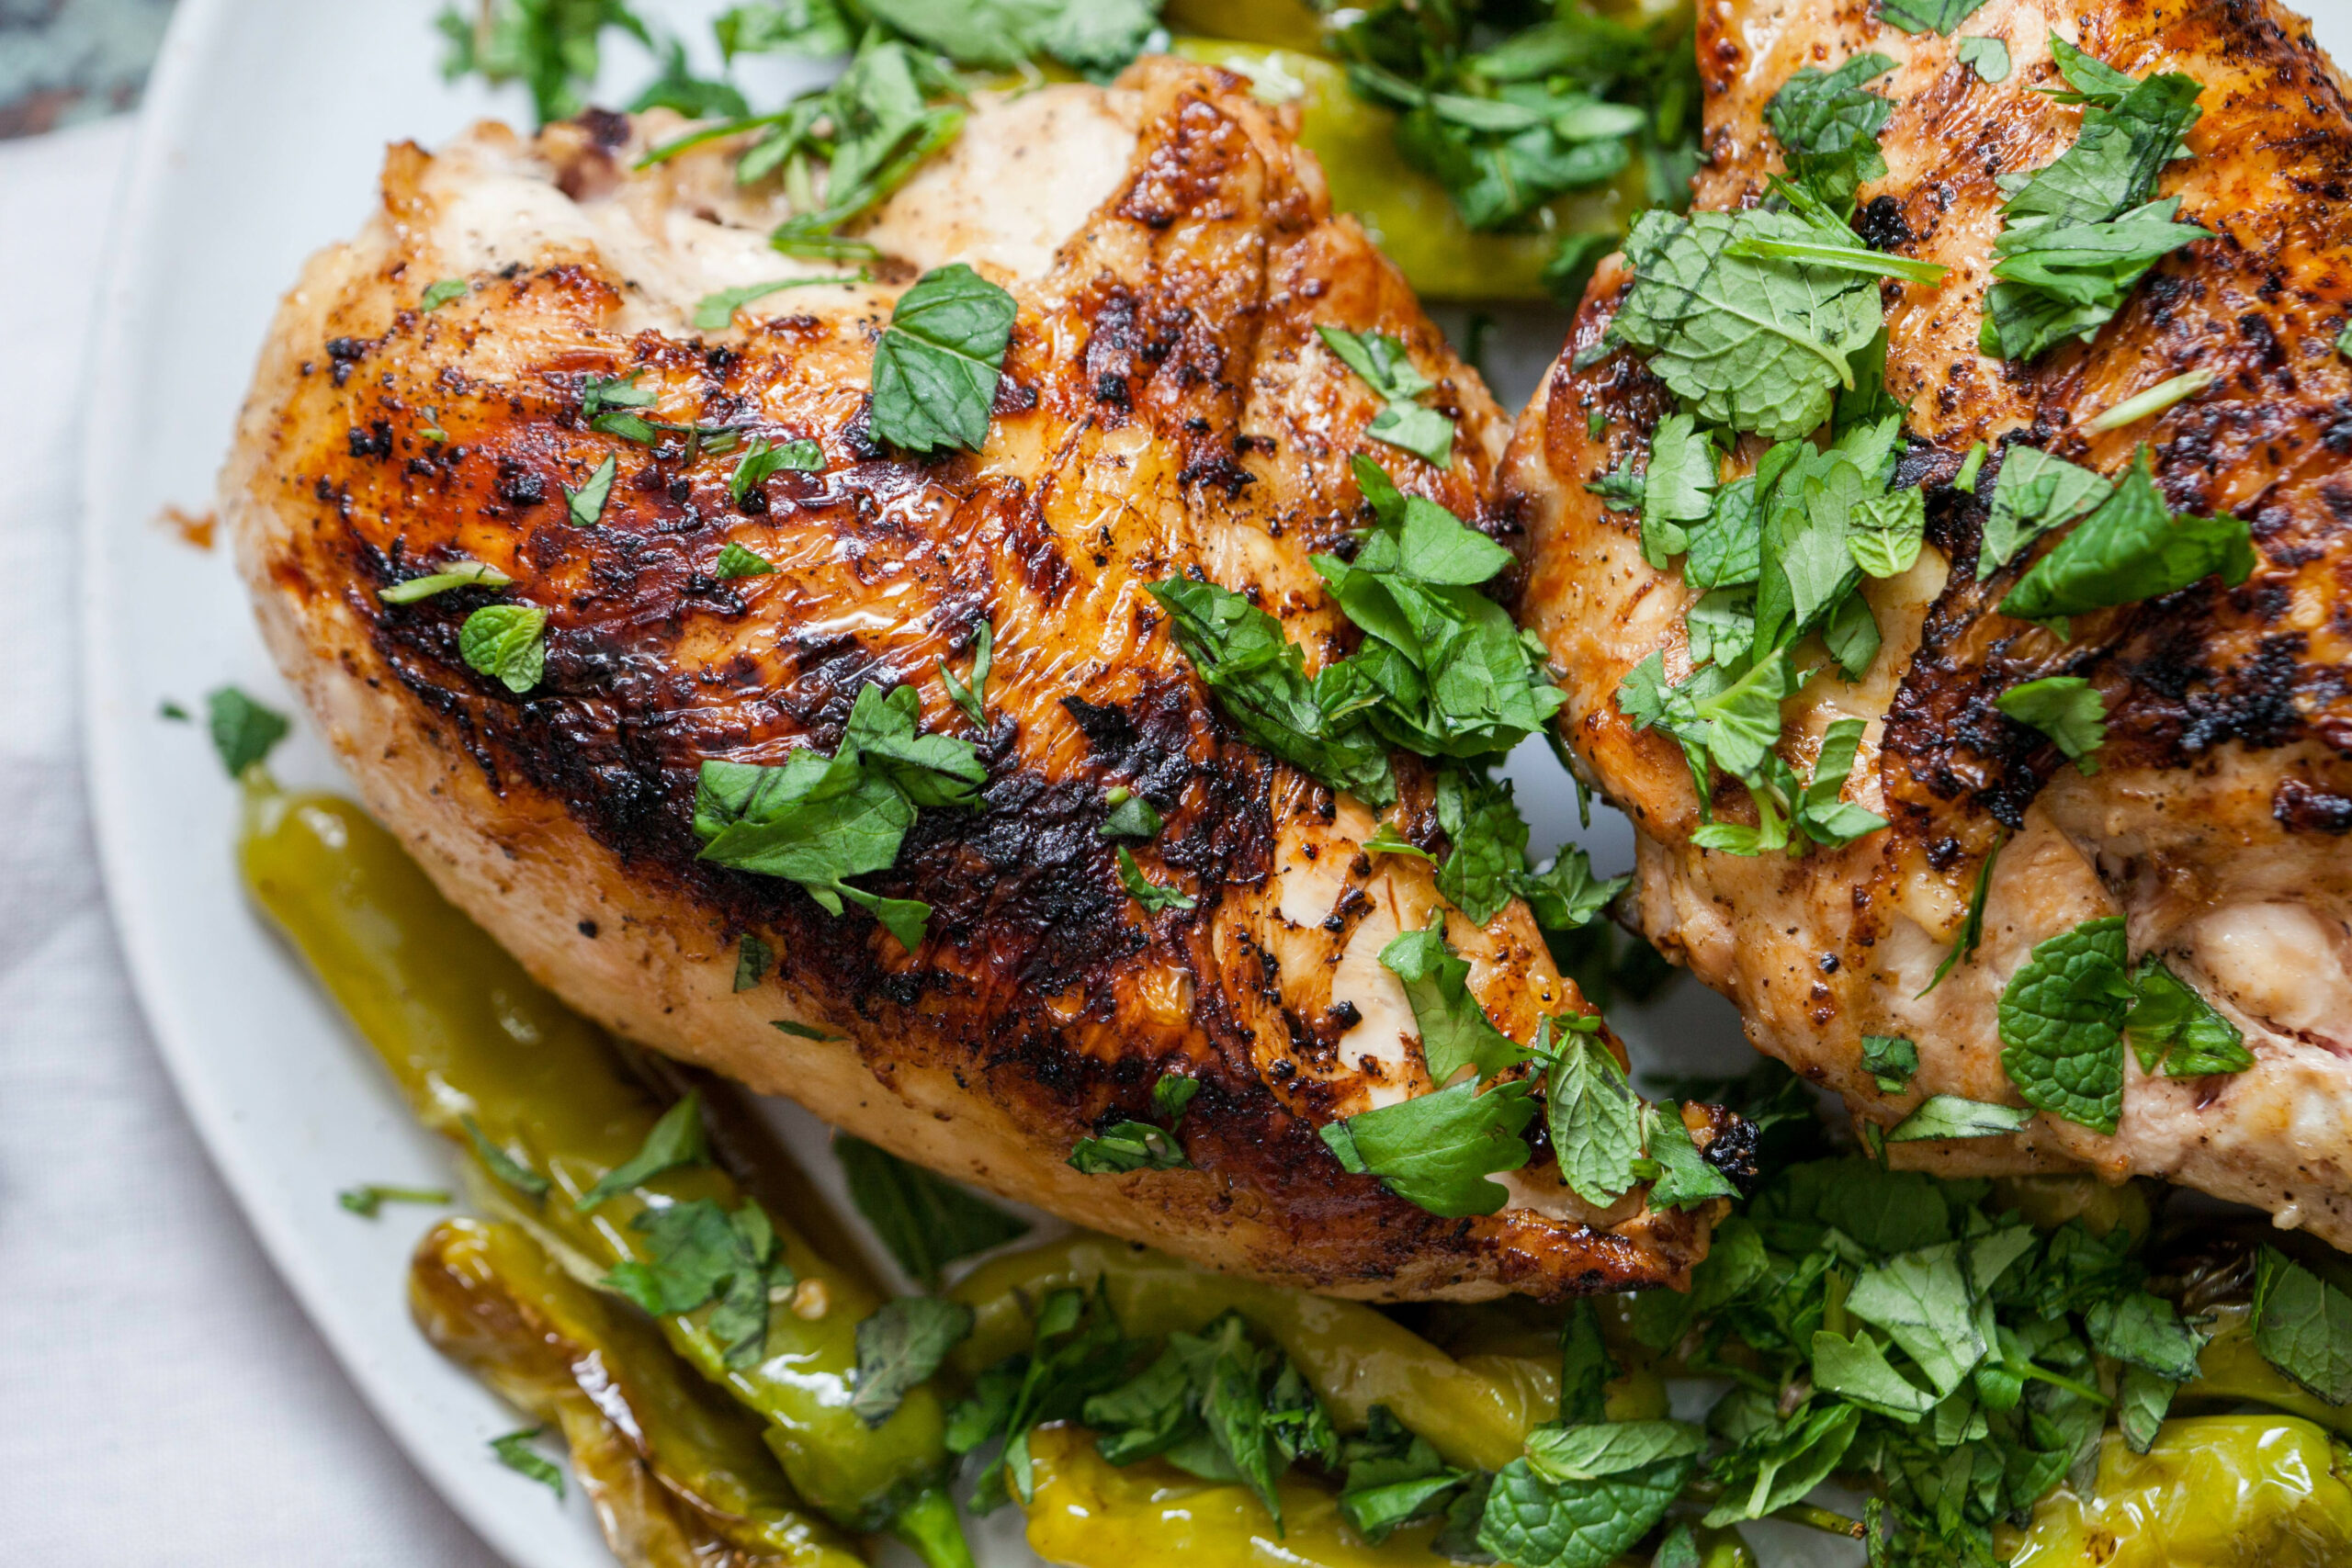 I made Split Chicken Breasts with Shishito Peppers and Herbs ..